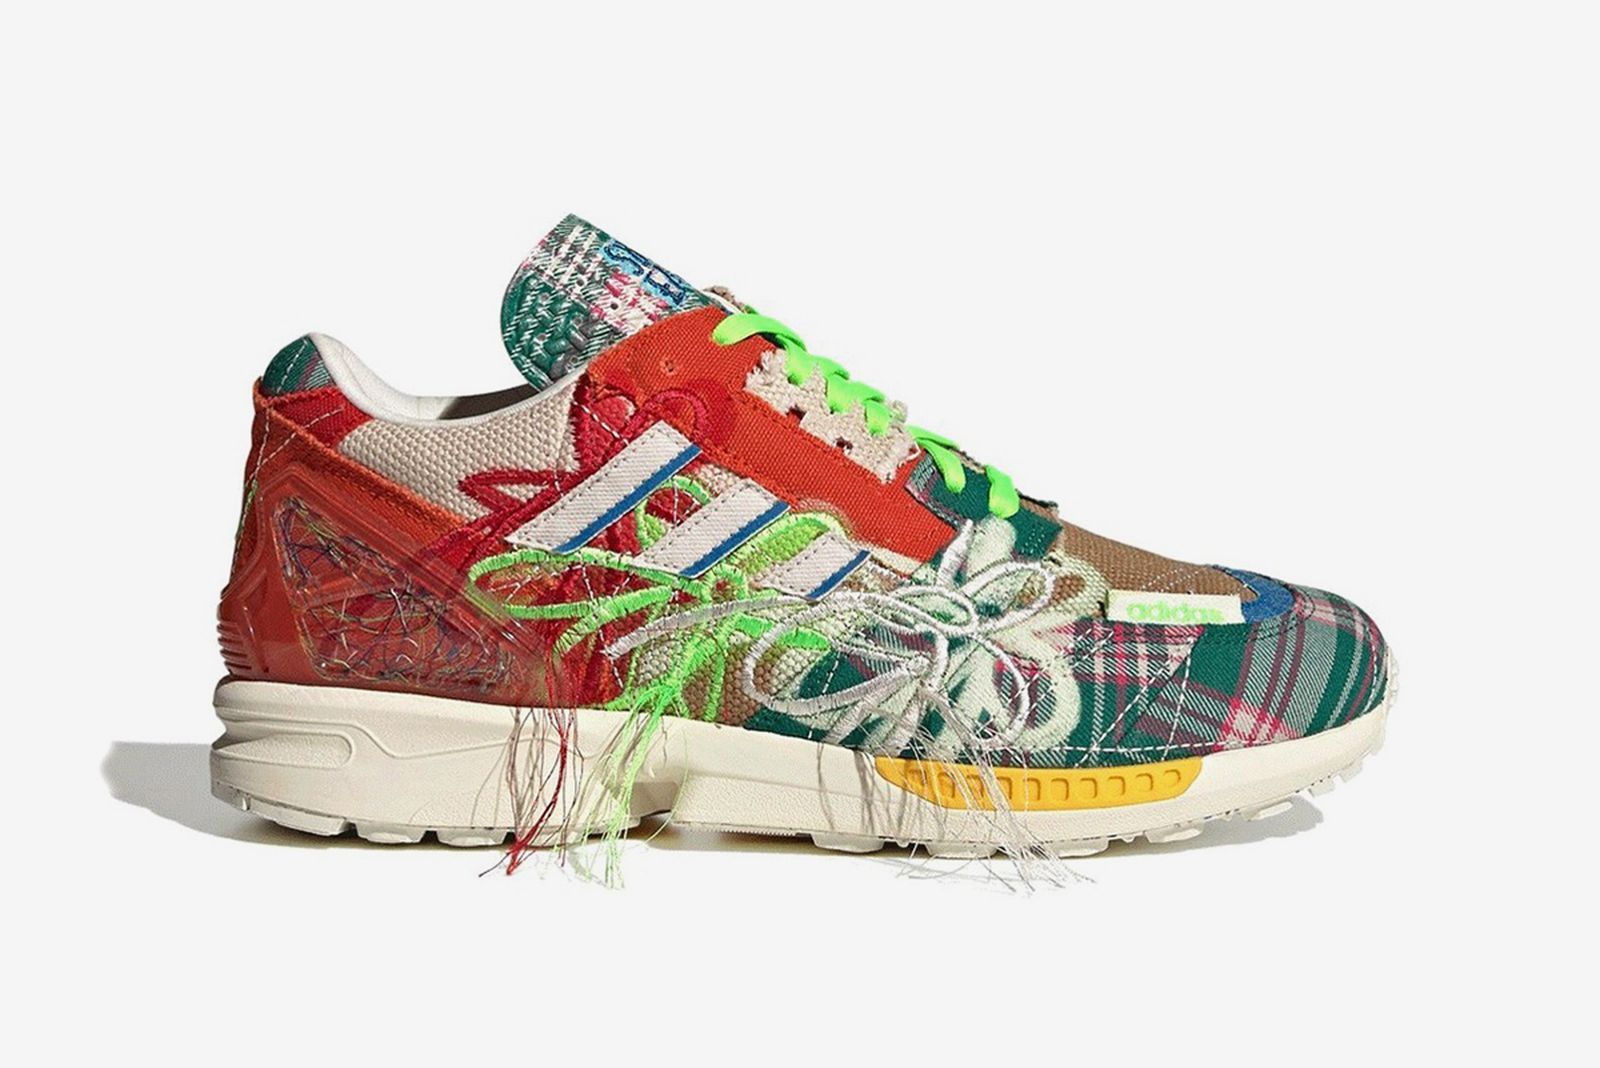 sean-wotherspoon-adidas-zx-8000-release-date-price-01